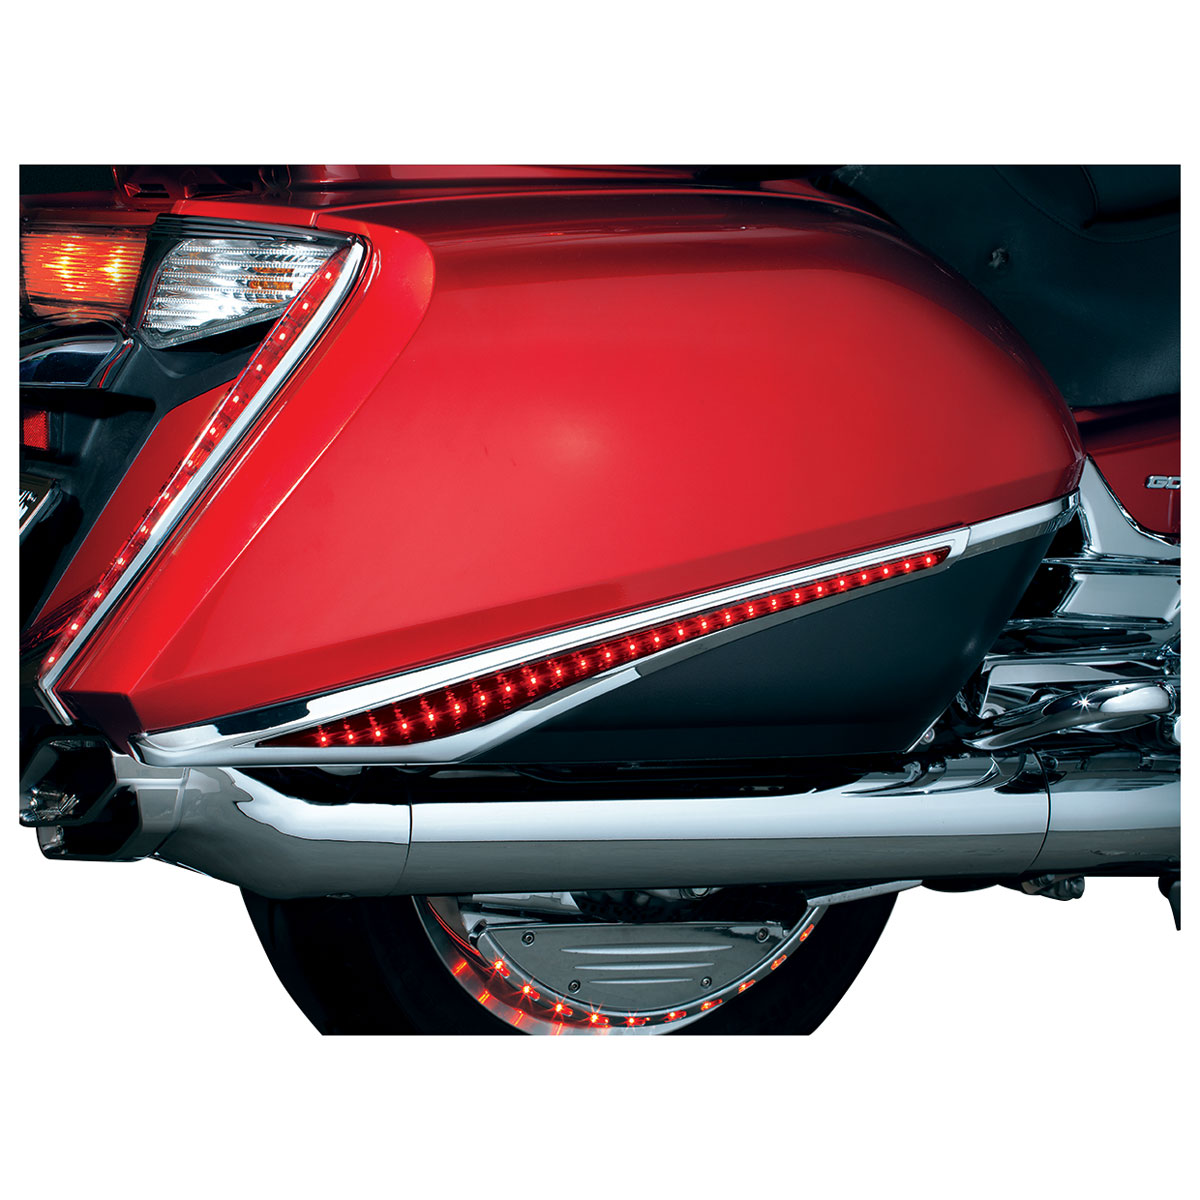 Kuryakyn Saddlebag Accent Swoops with LED Lights for GL1800 and F6B Gold Wing